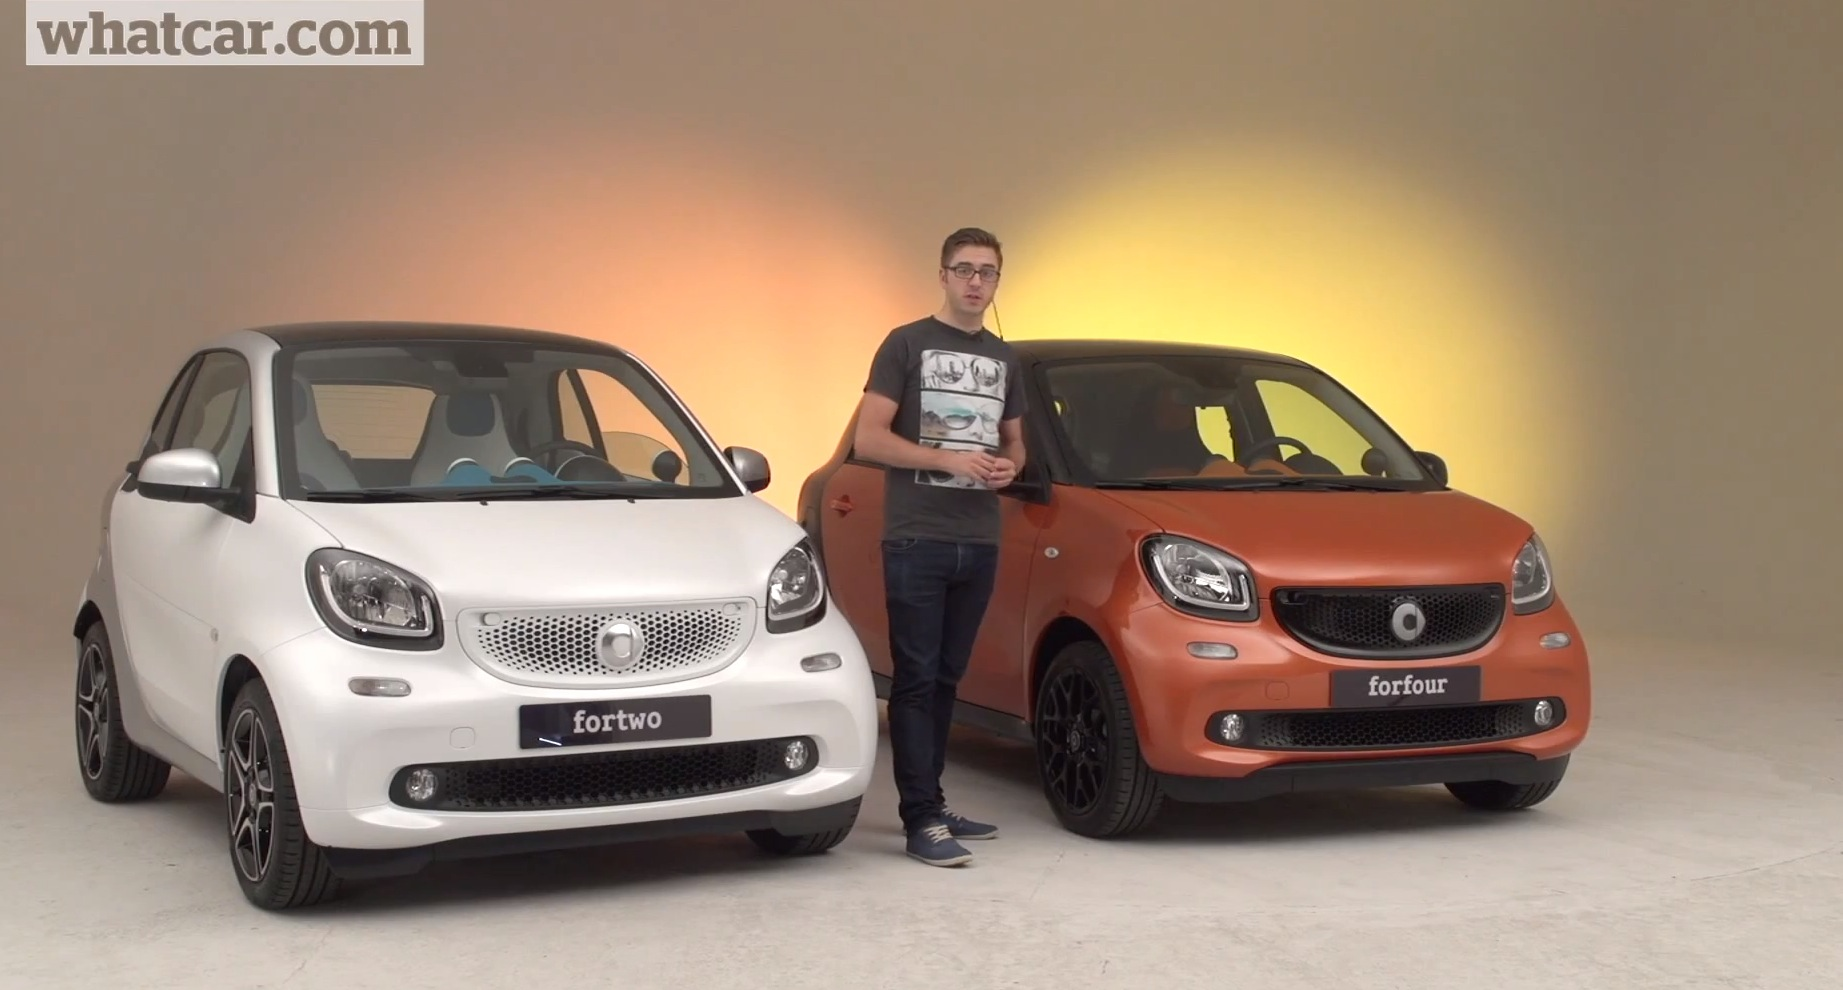 first look at 2014 smart fortwo and forfour from what car autoevolution. Black Bedroom Furniture Sets. Home Design Ideas